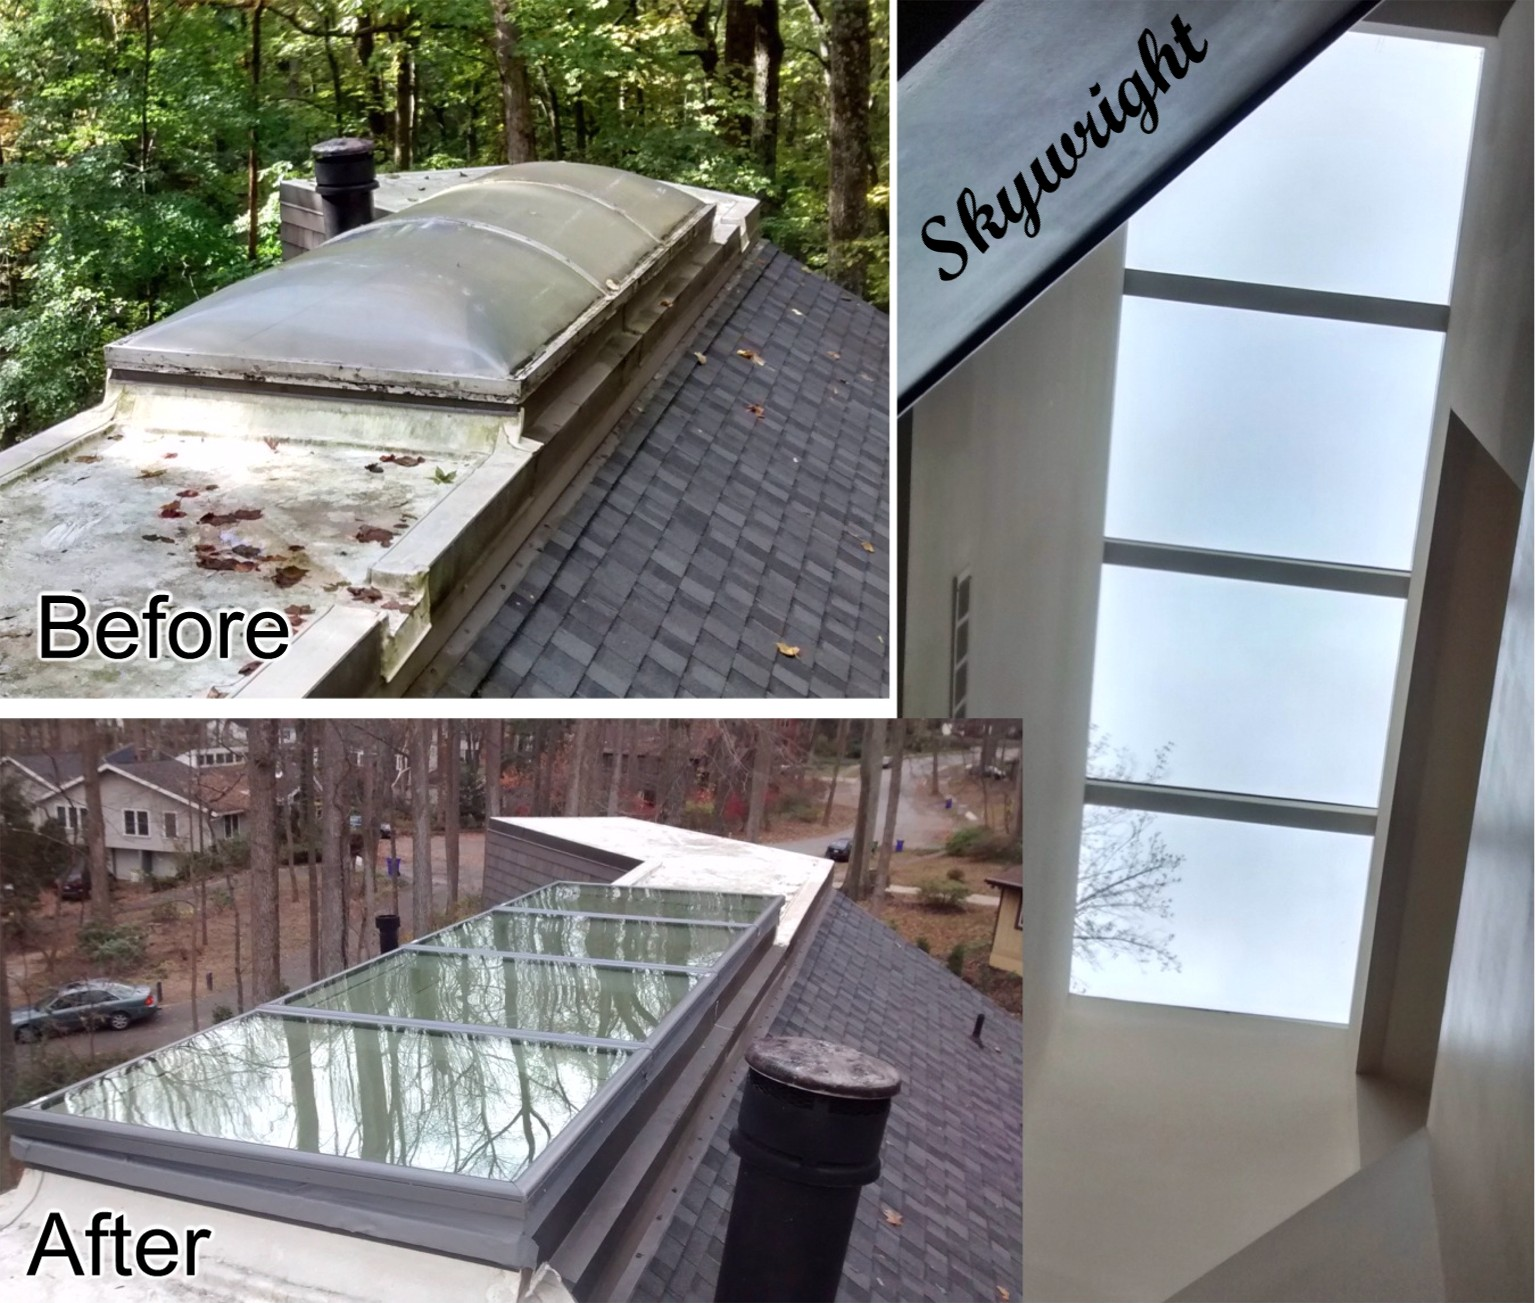 Large bubble skylight replaced with 4 Velux FCM skylights